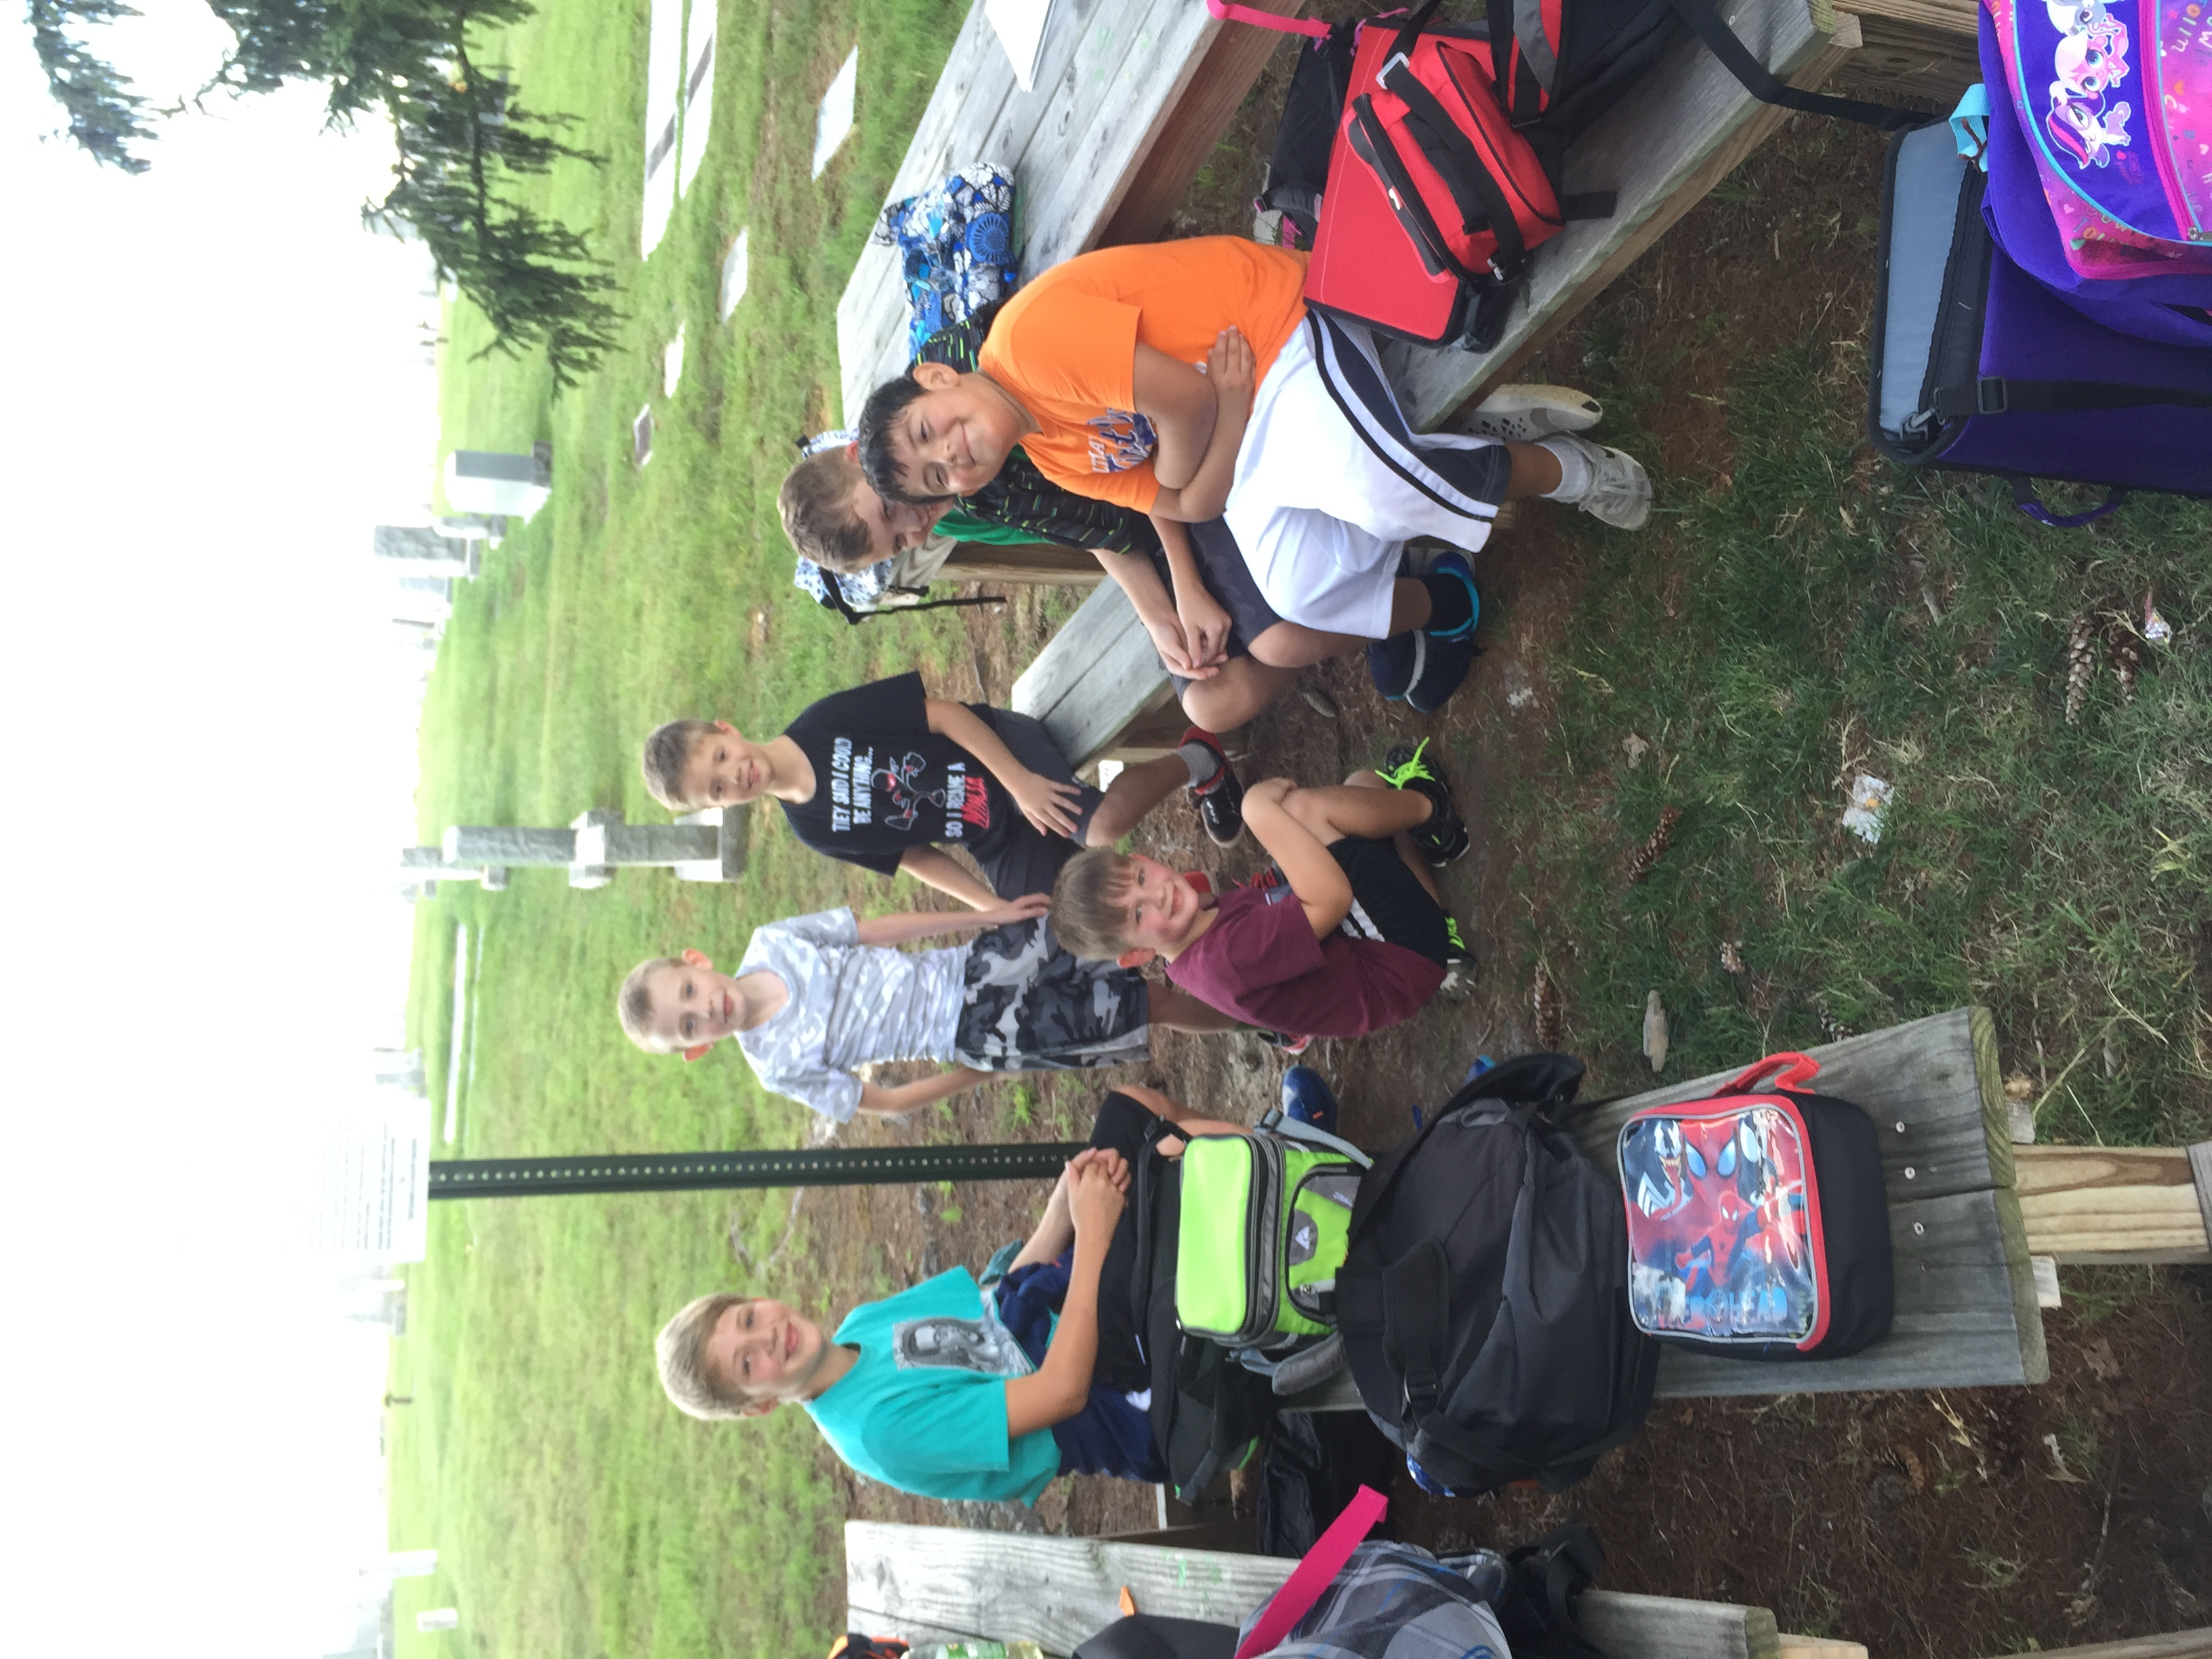 Our Outreach Site in Piney Flats serves boys and girls and the kids always have a blast!